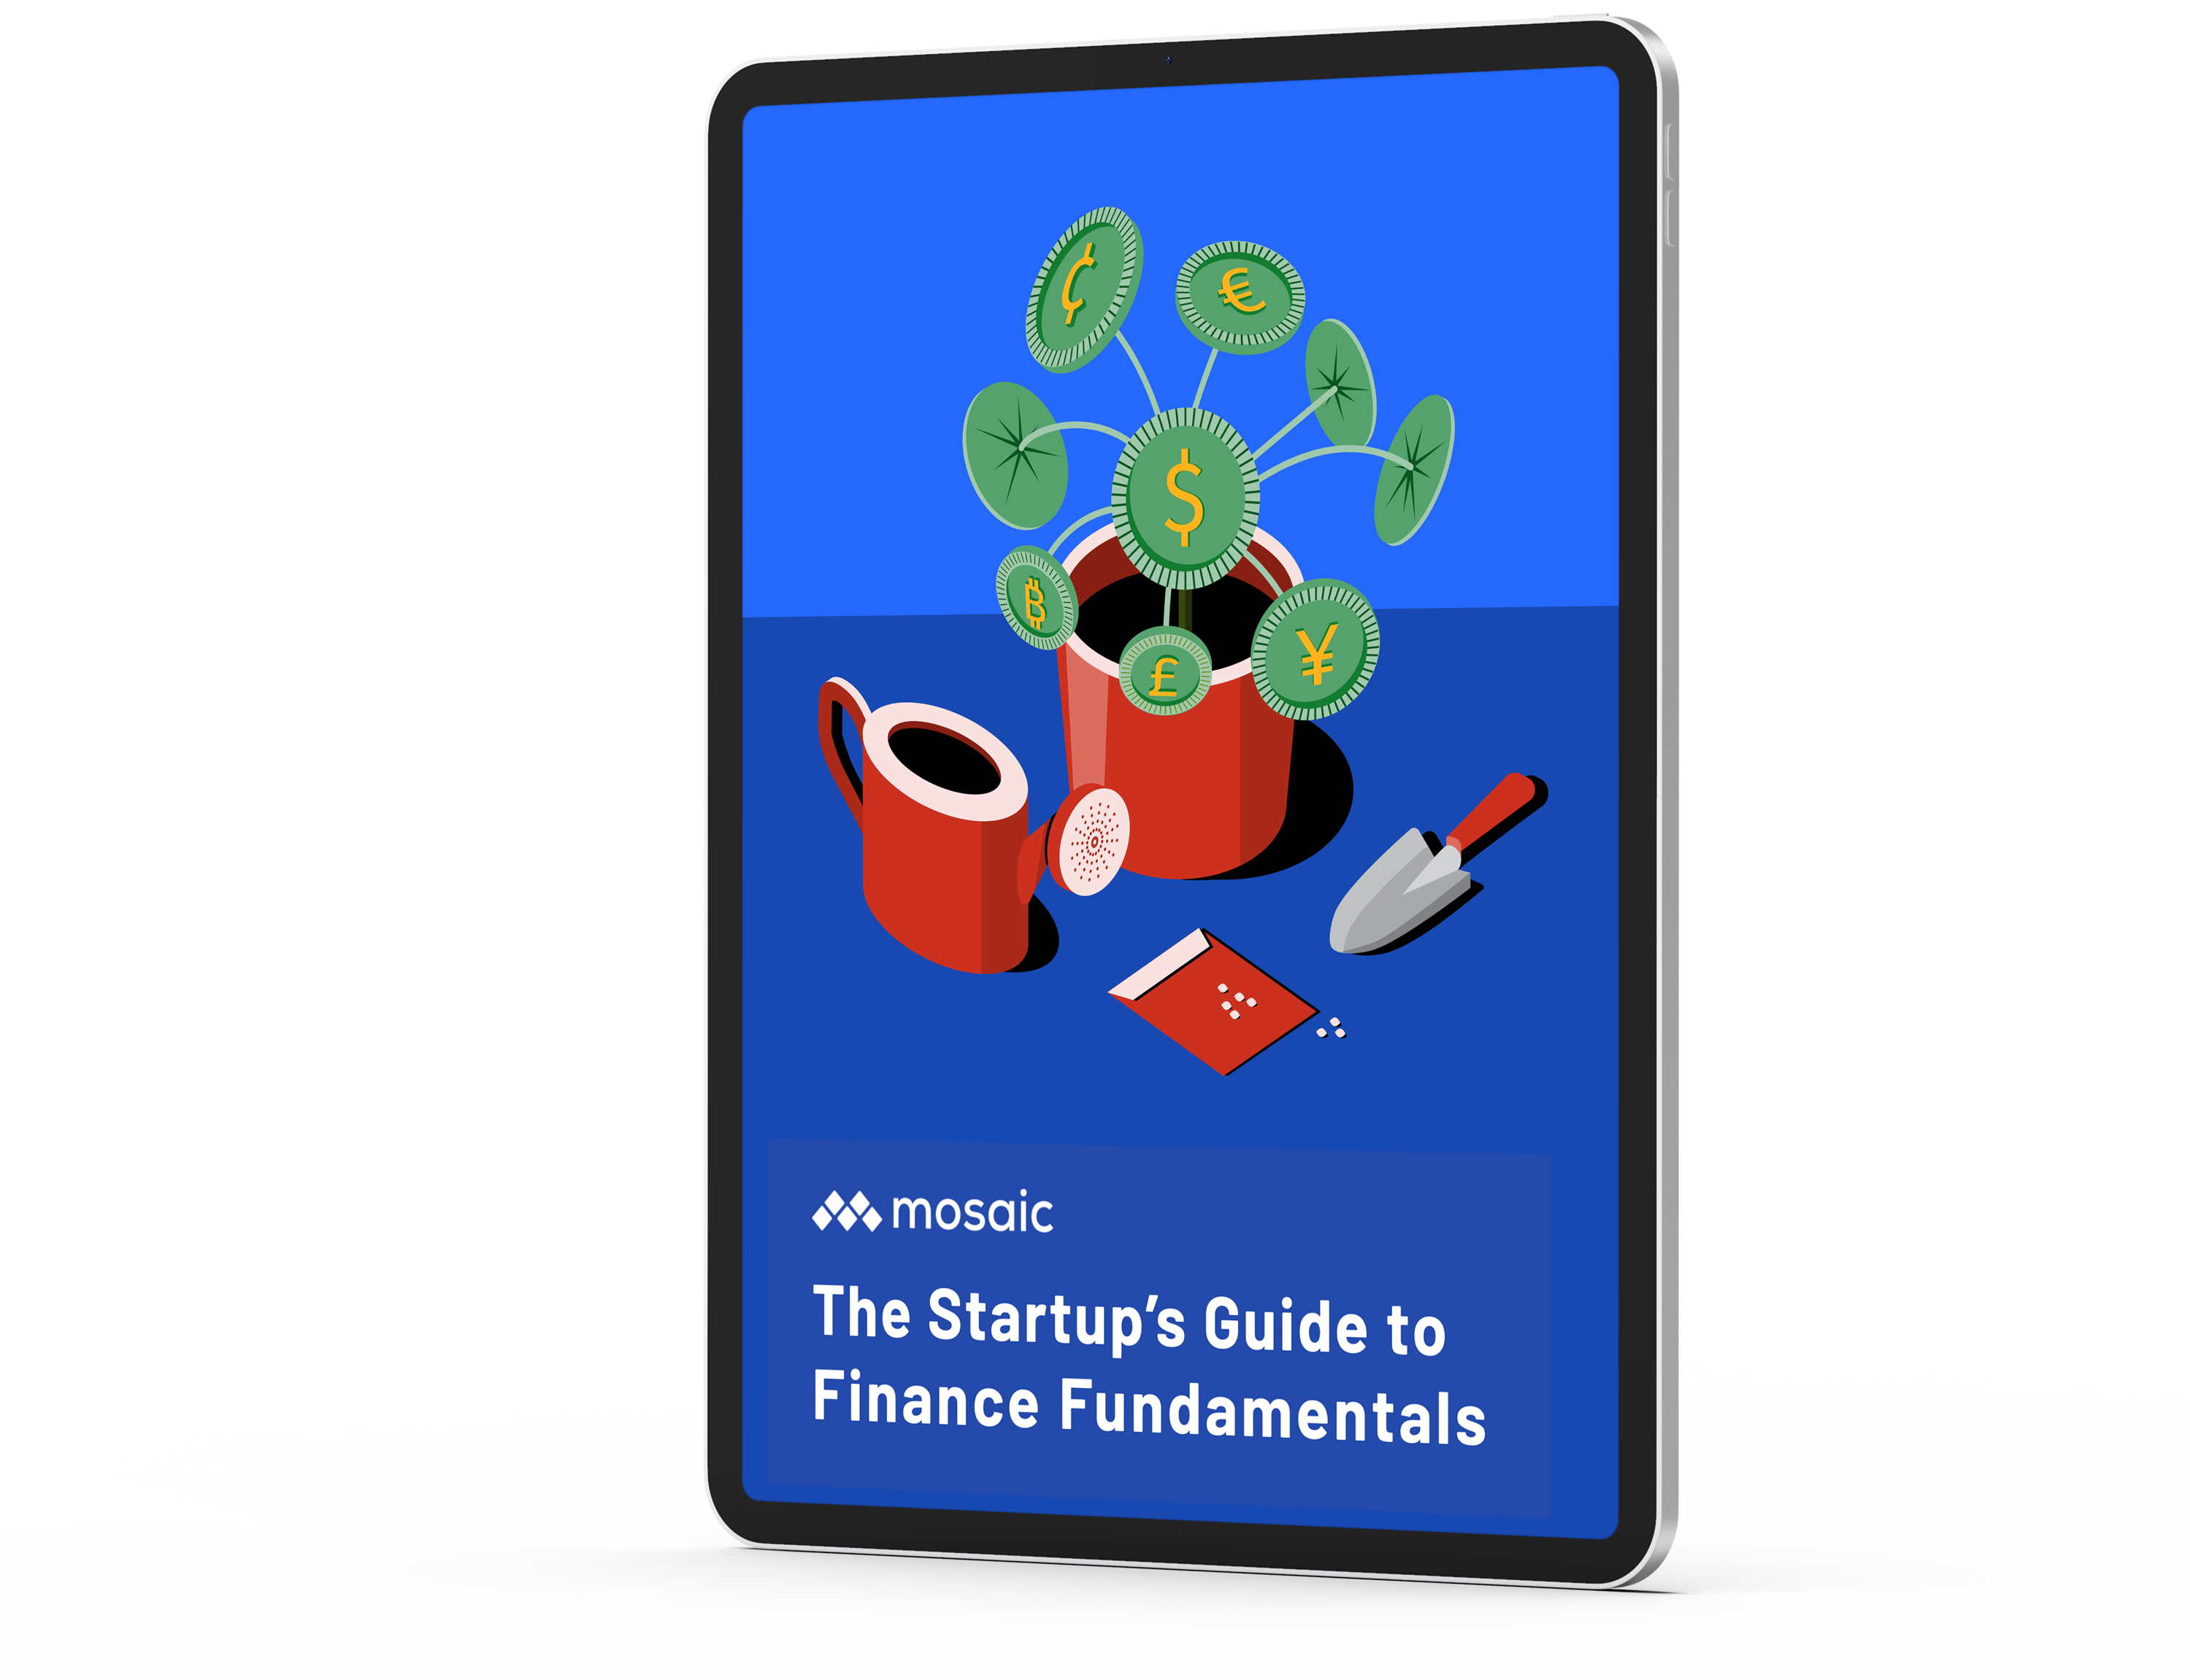 The Startup's Guide to Finance Fundamentals